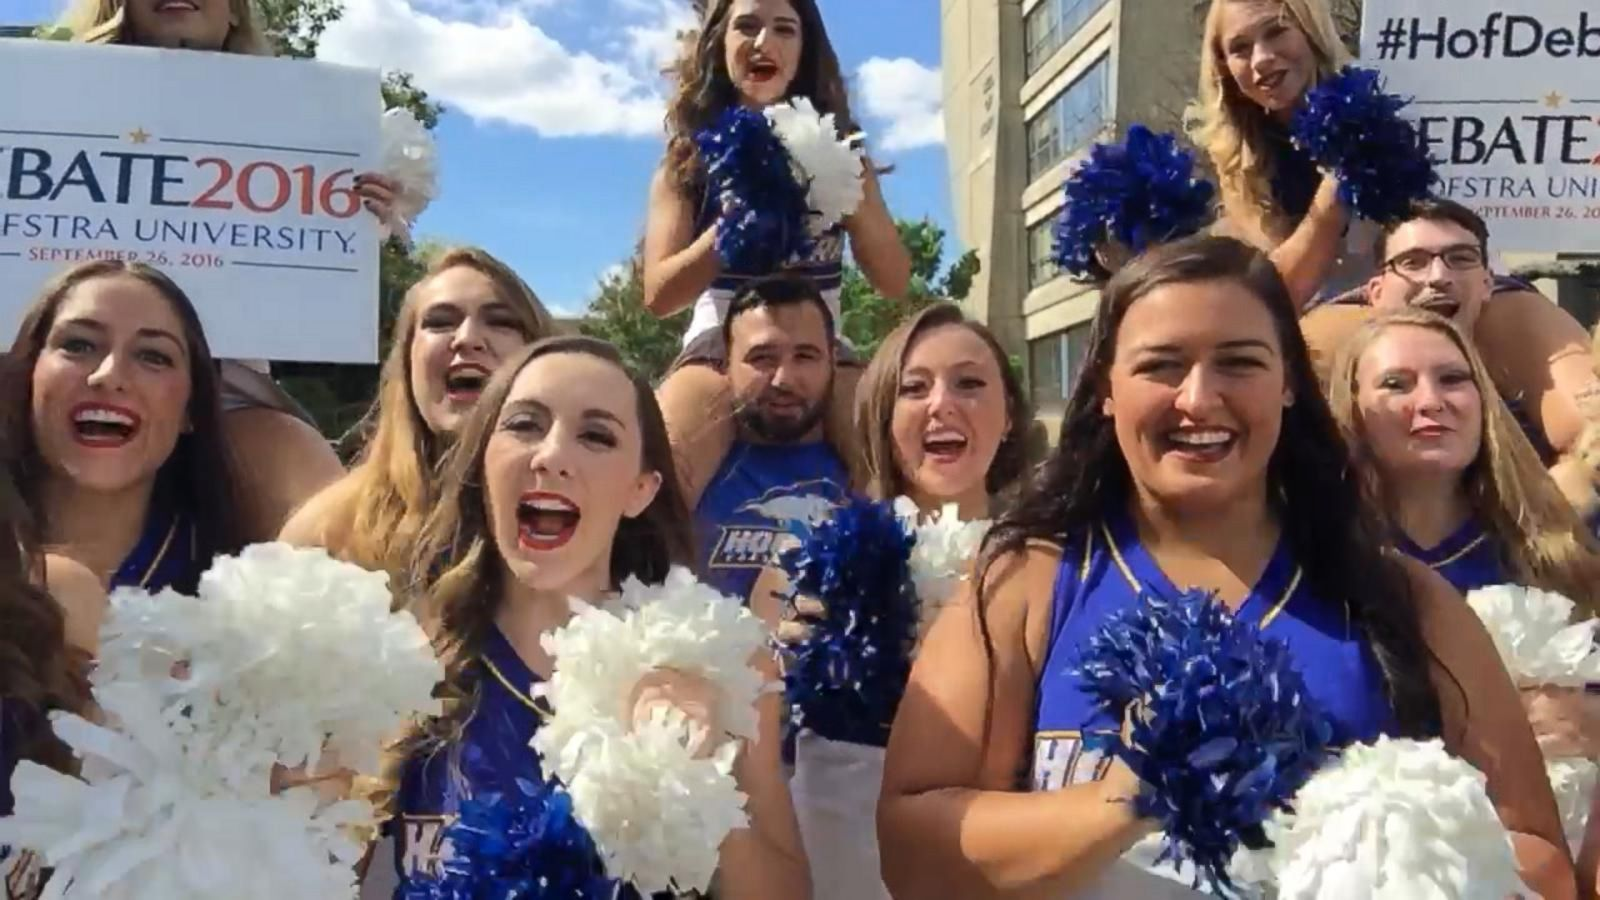 VIDEO: Meet the Hofstra University Cheerleaders